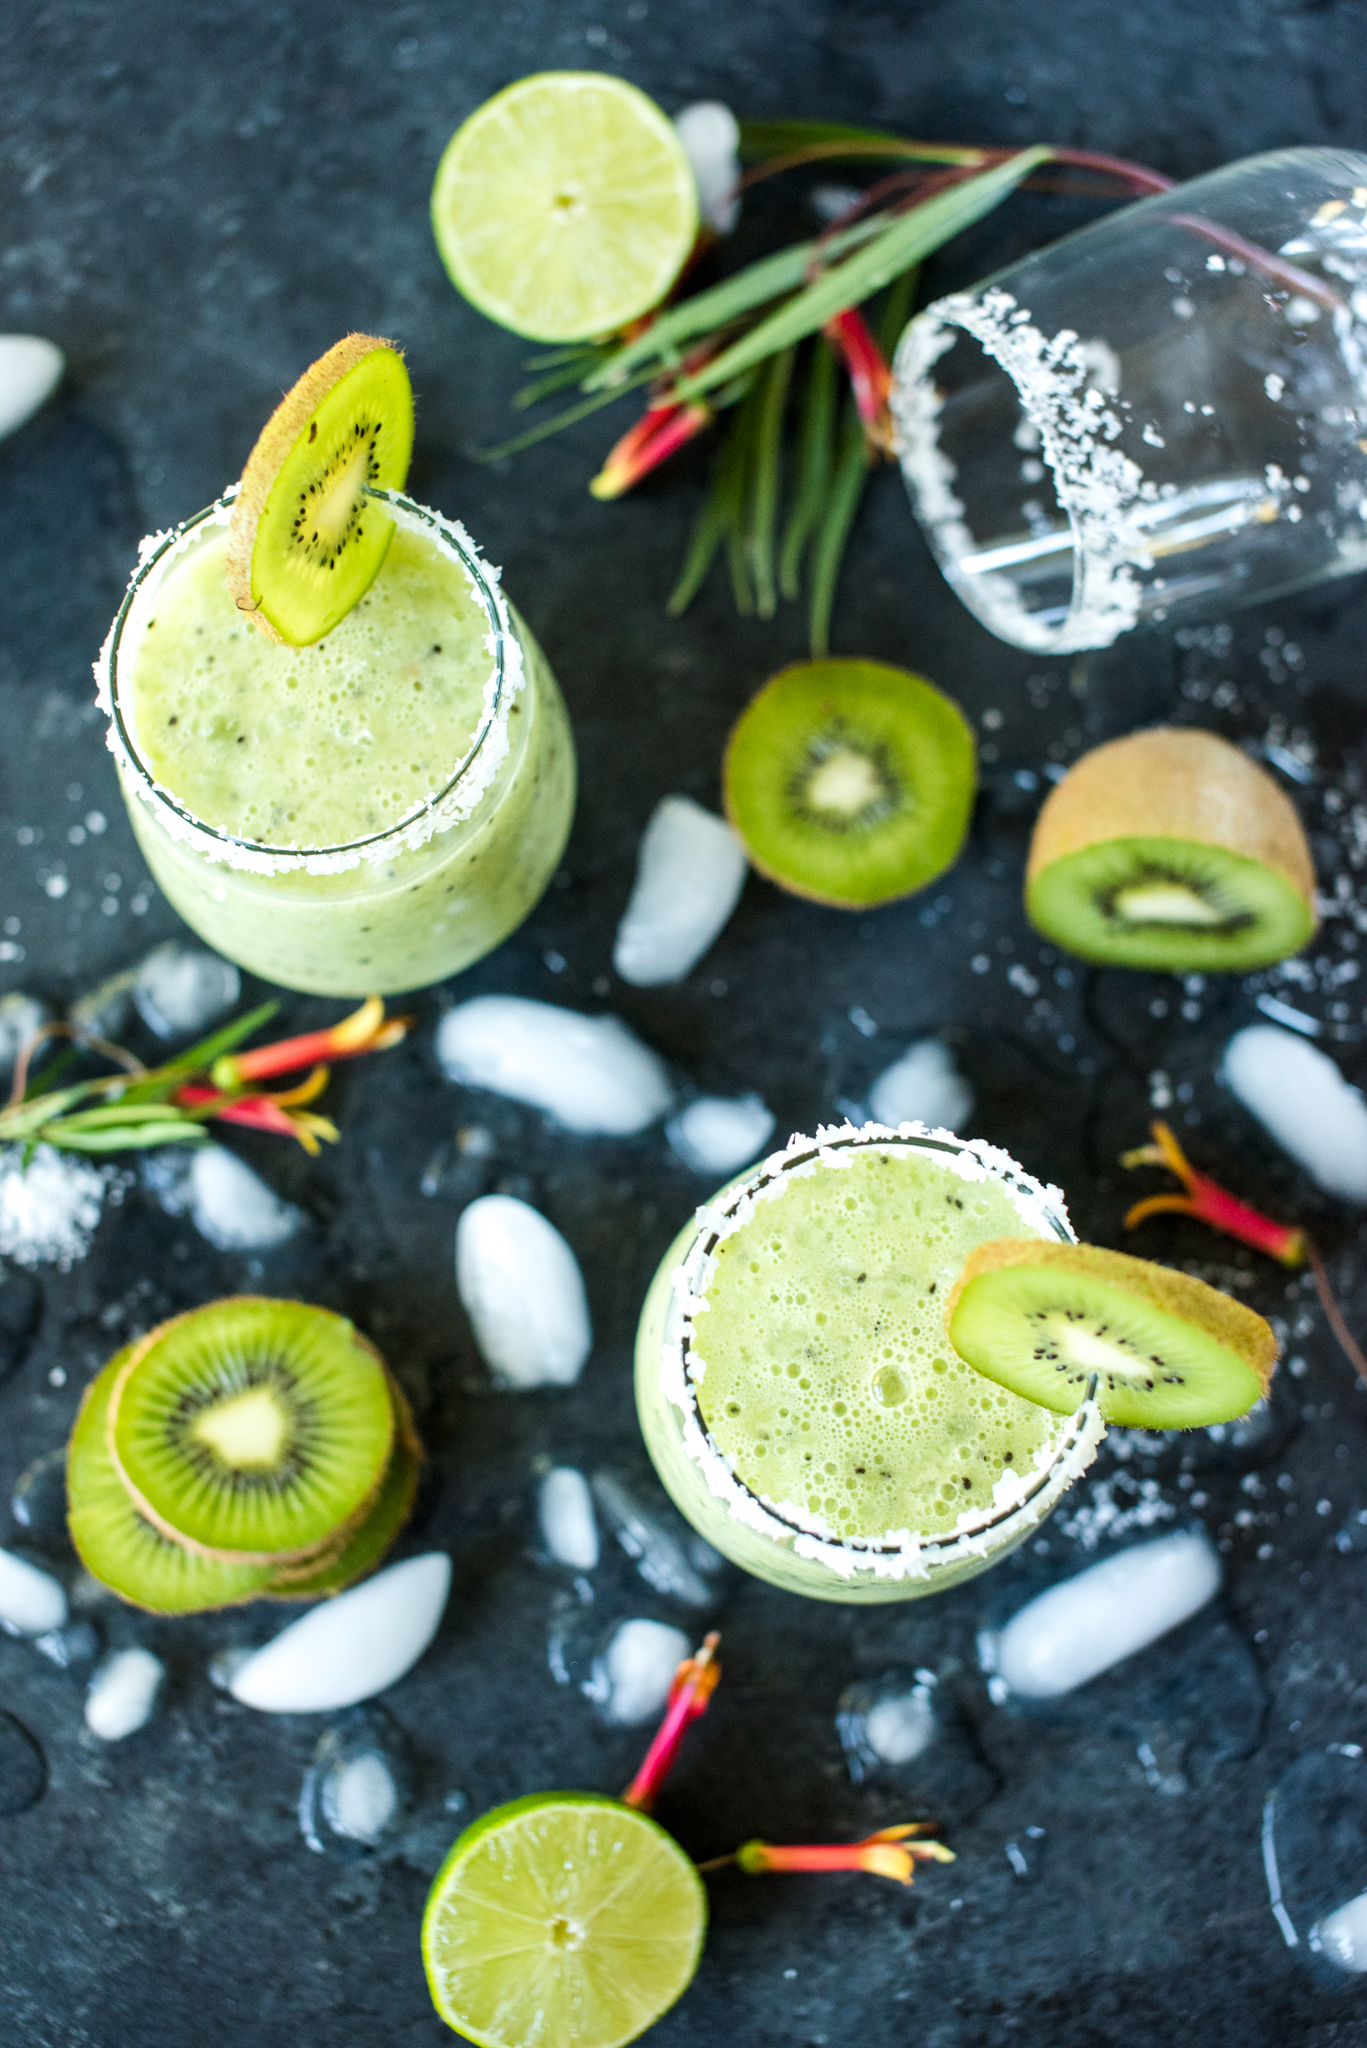 Honey Kiwi Margarita- absolutely delicious and so easy to make! Just throw all the ingredients in a blender and serve!